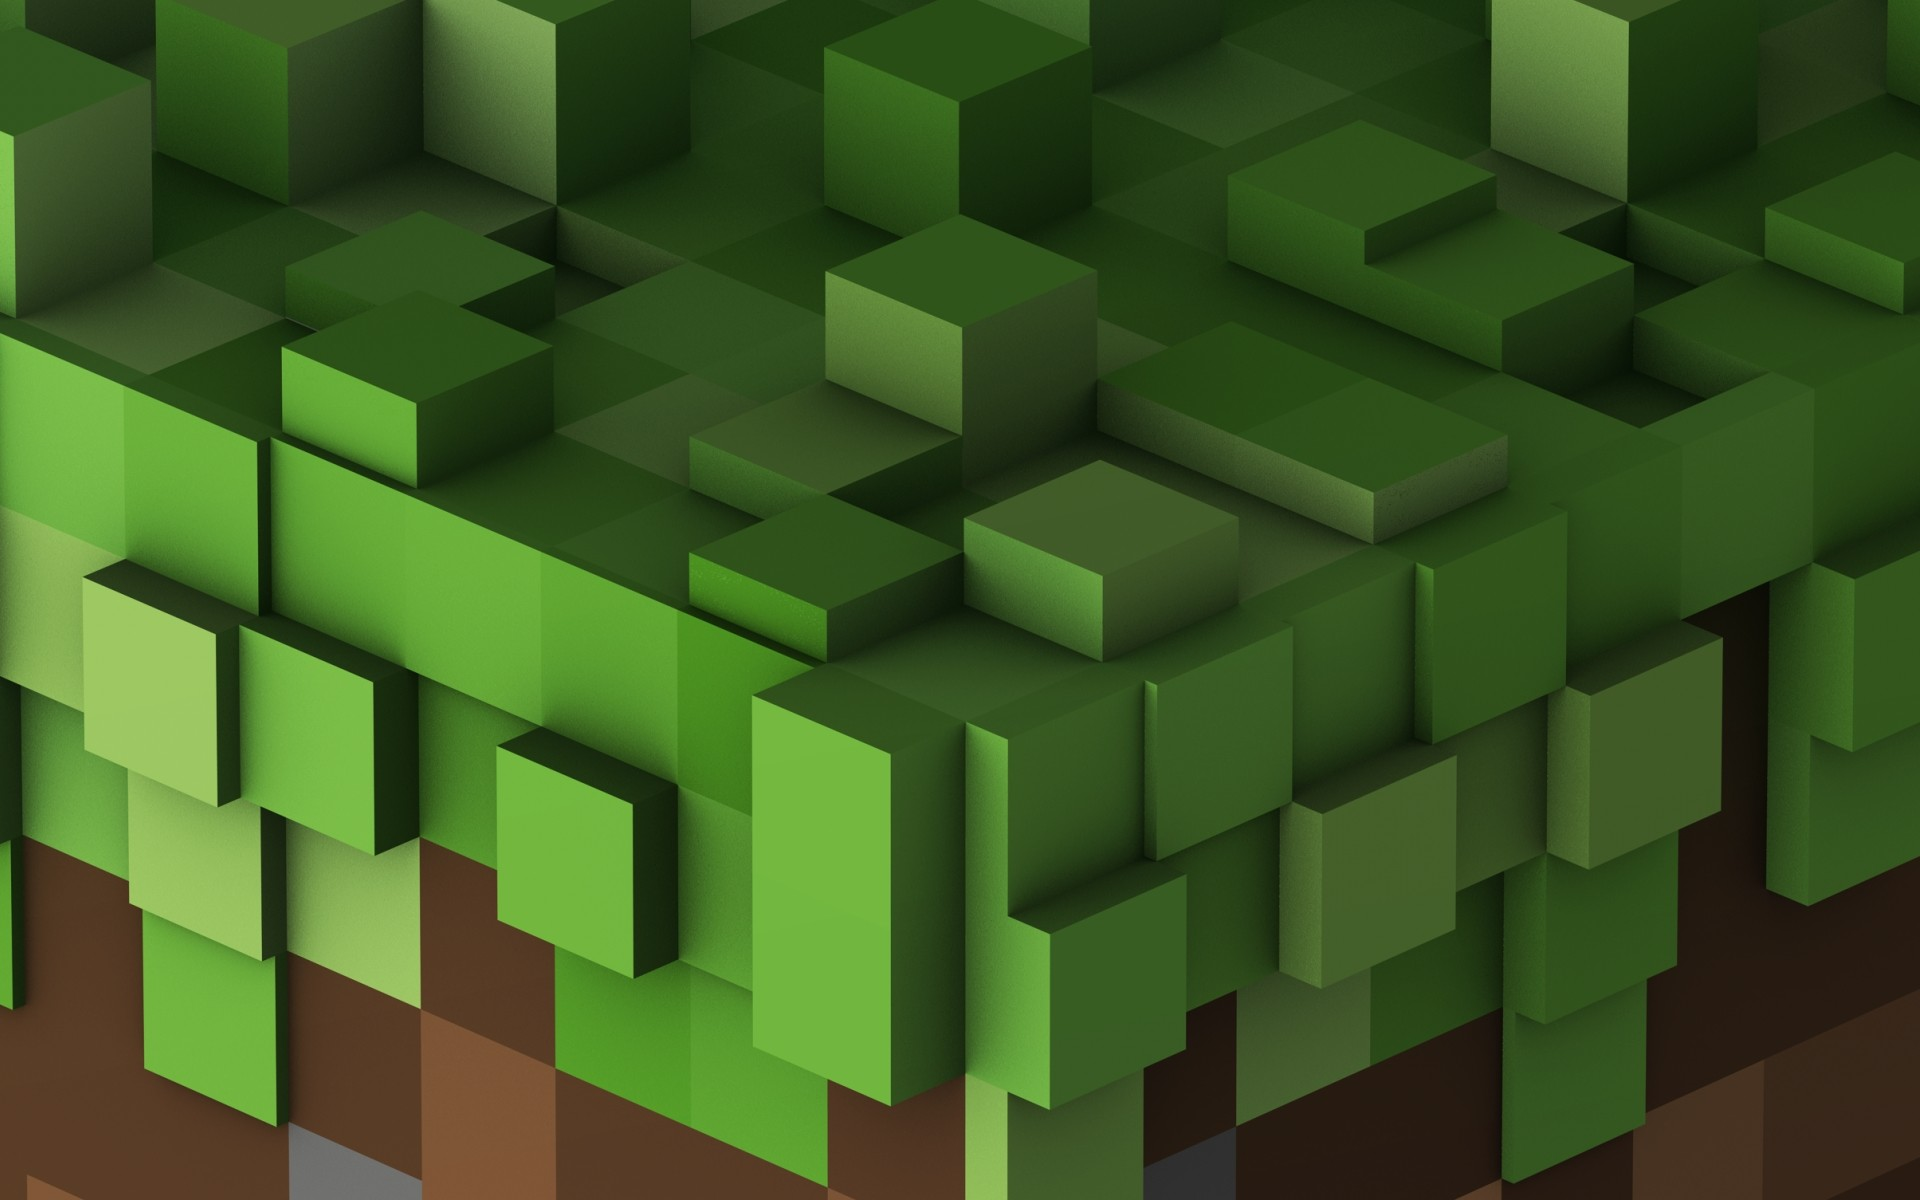 Wallpapers Of Minecraft Background Pictures - Minecraft computerspiele